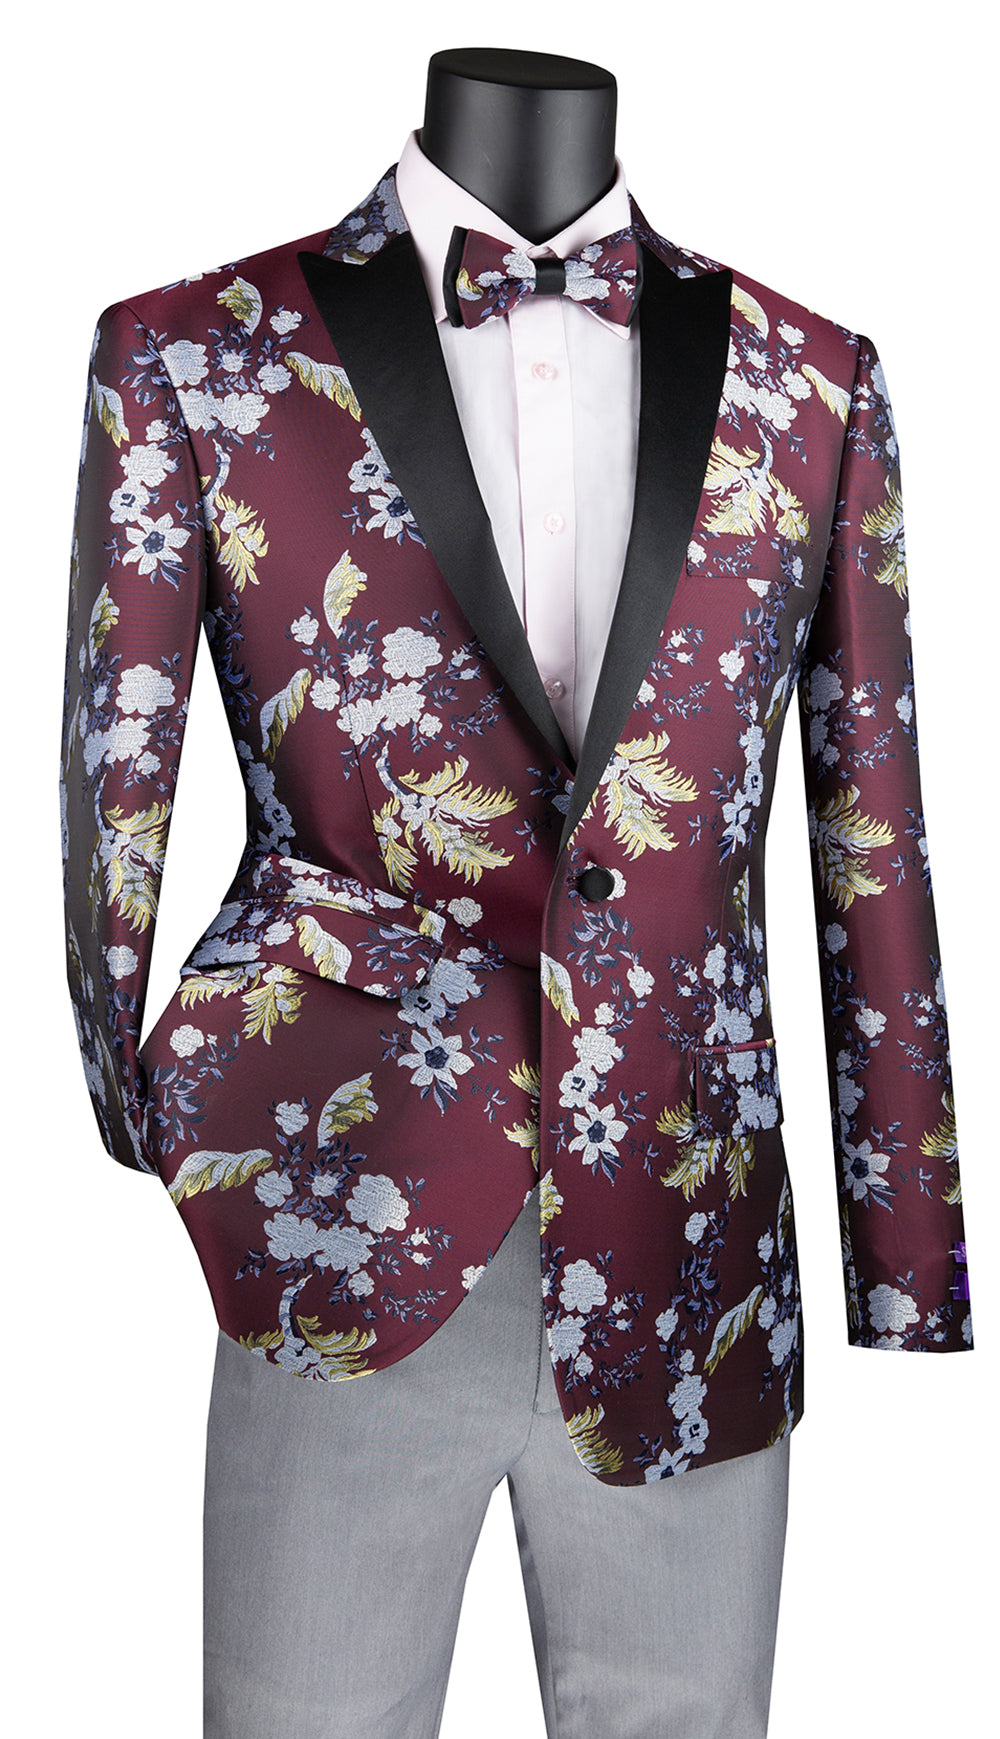 Vinci Sport Coat BSF-14-Burgundy - Church Suits For Less